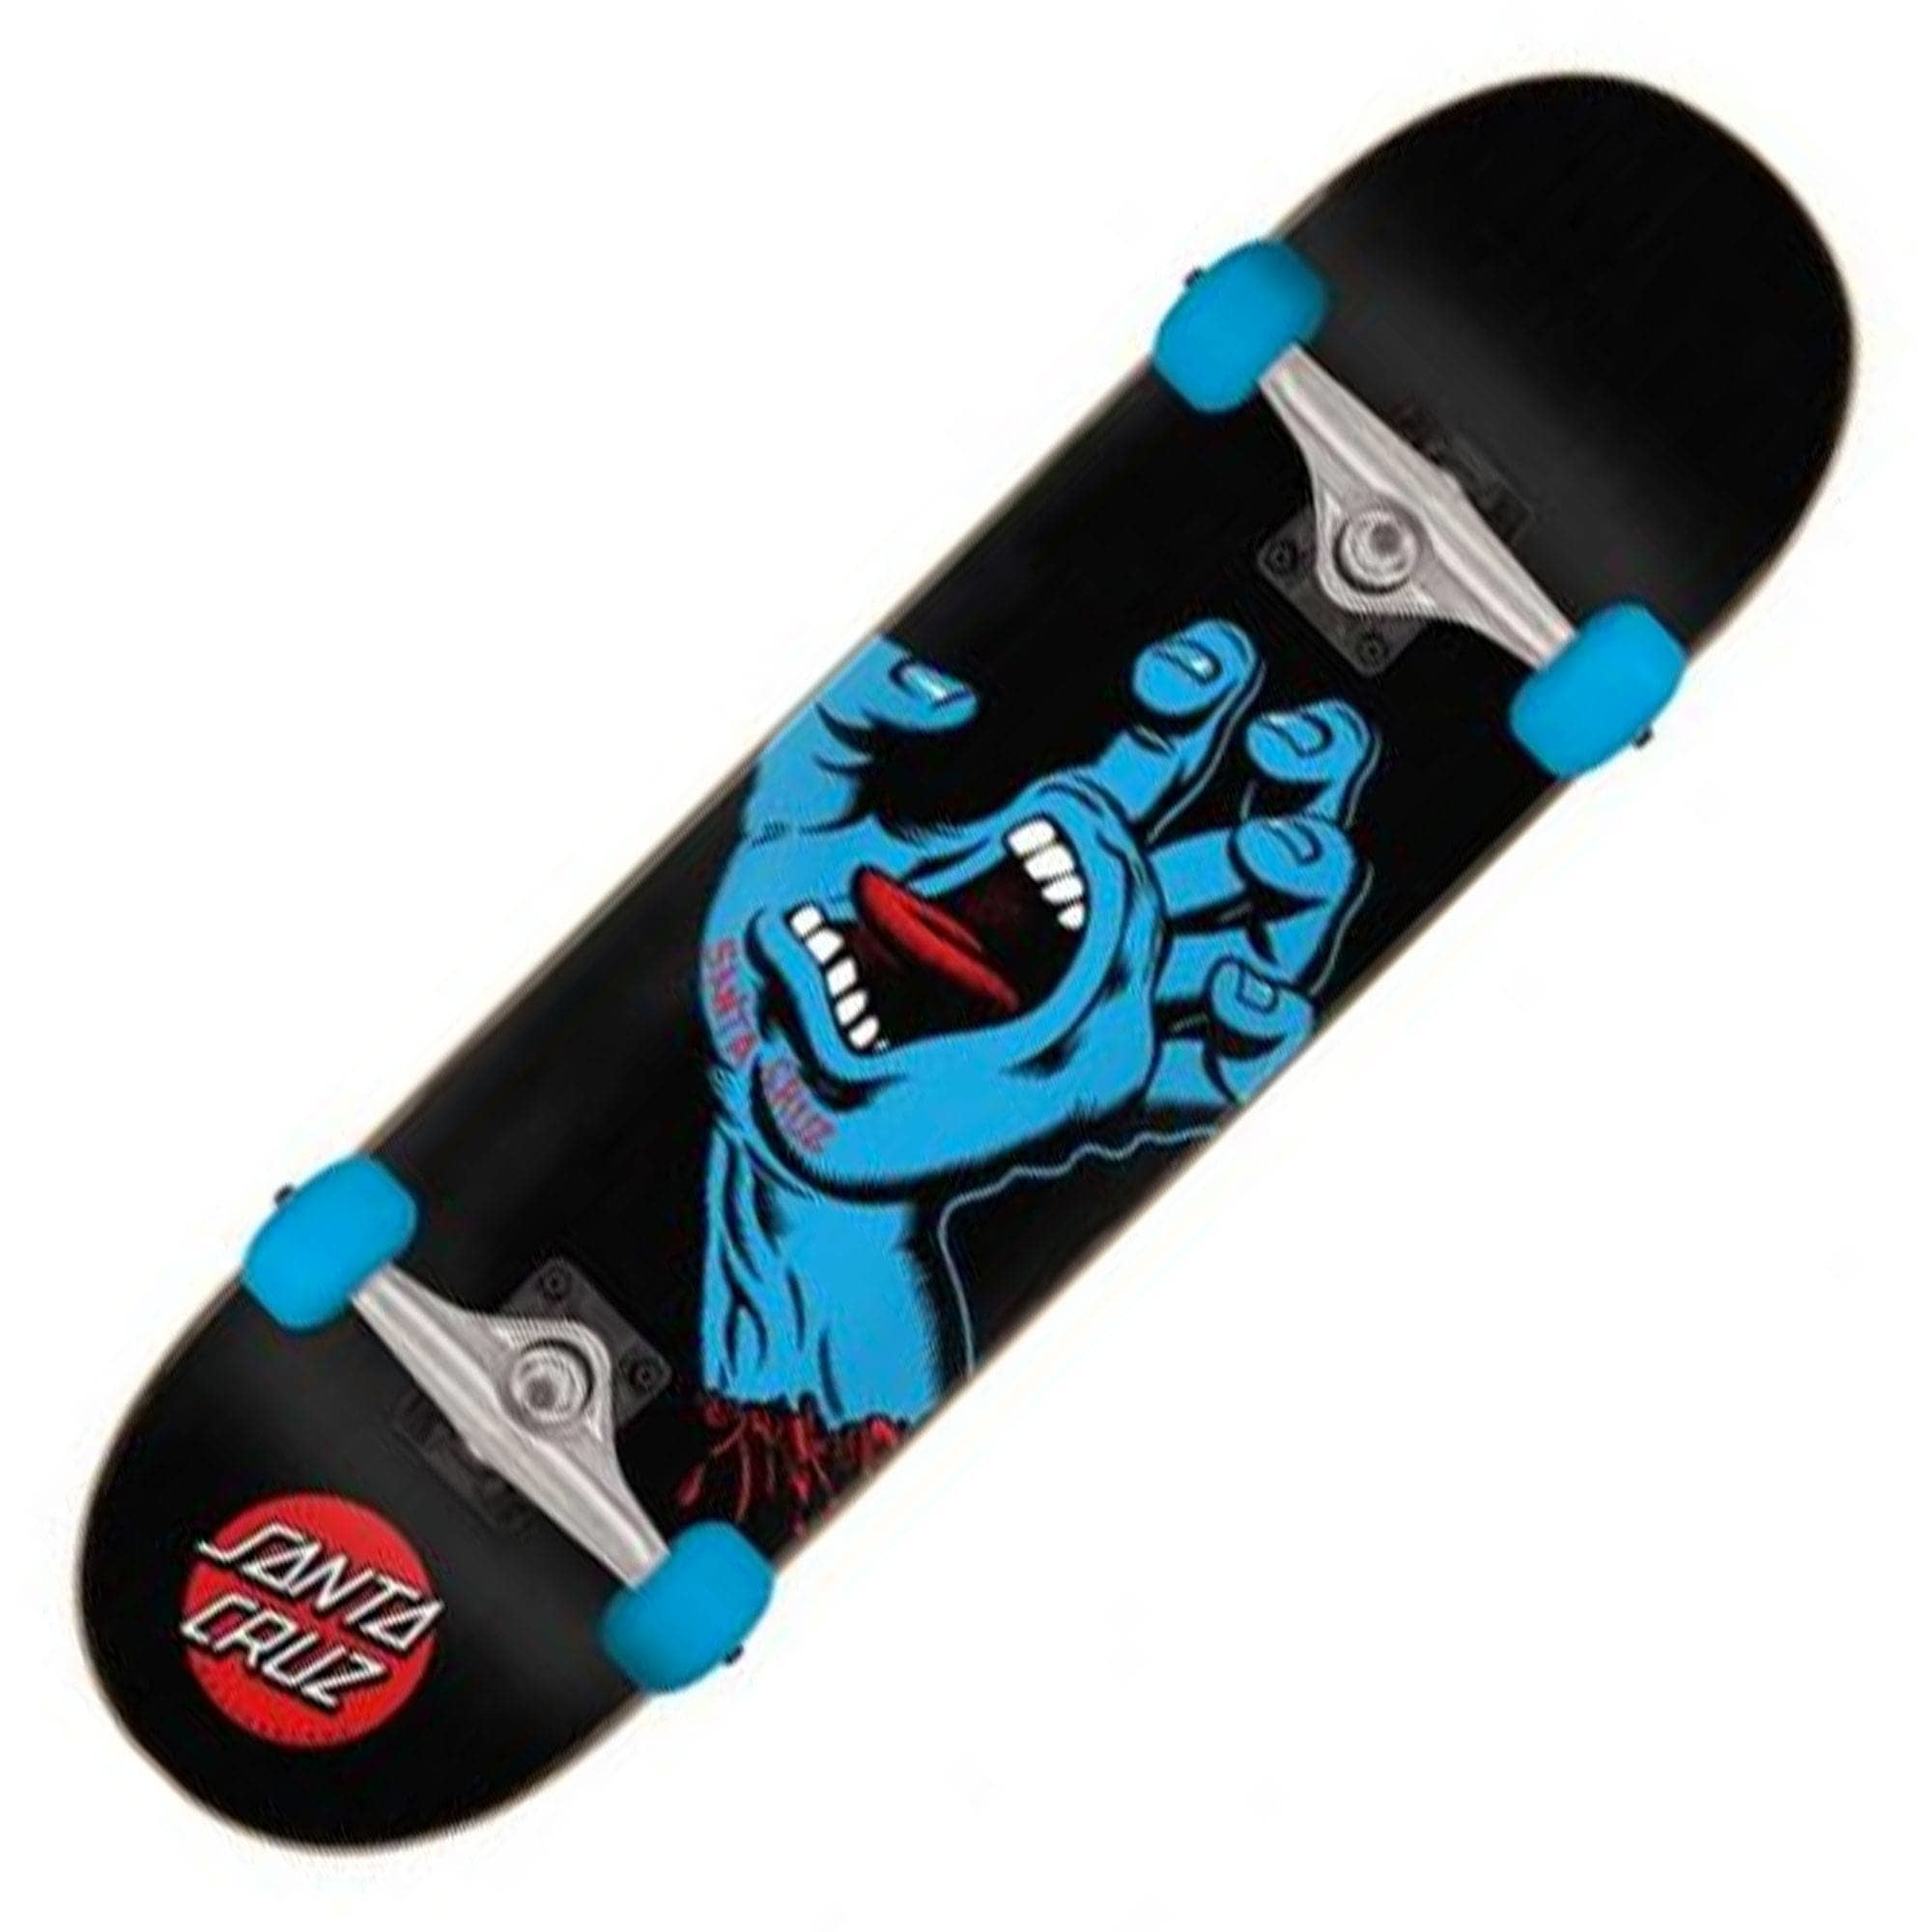 santa cruz santa cruz screaming hand 8.0 complete